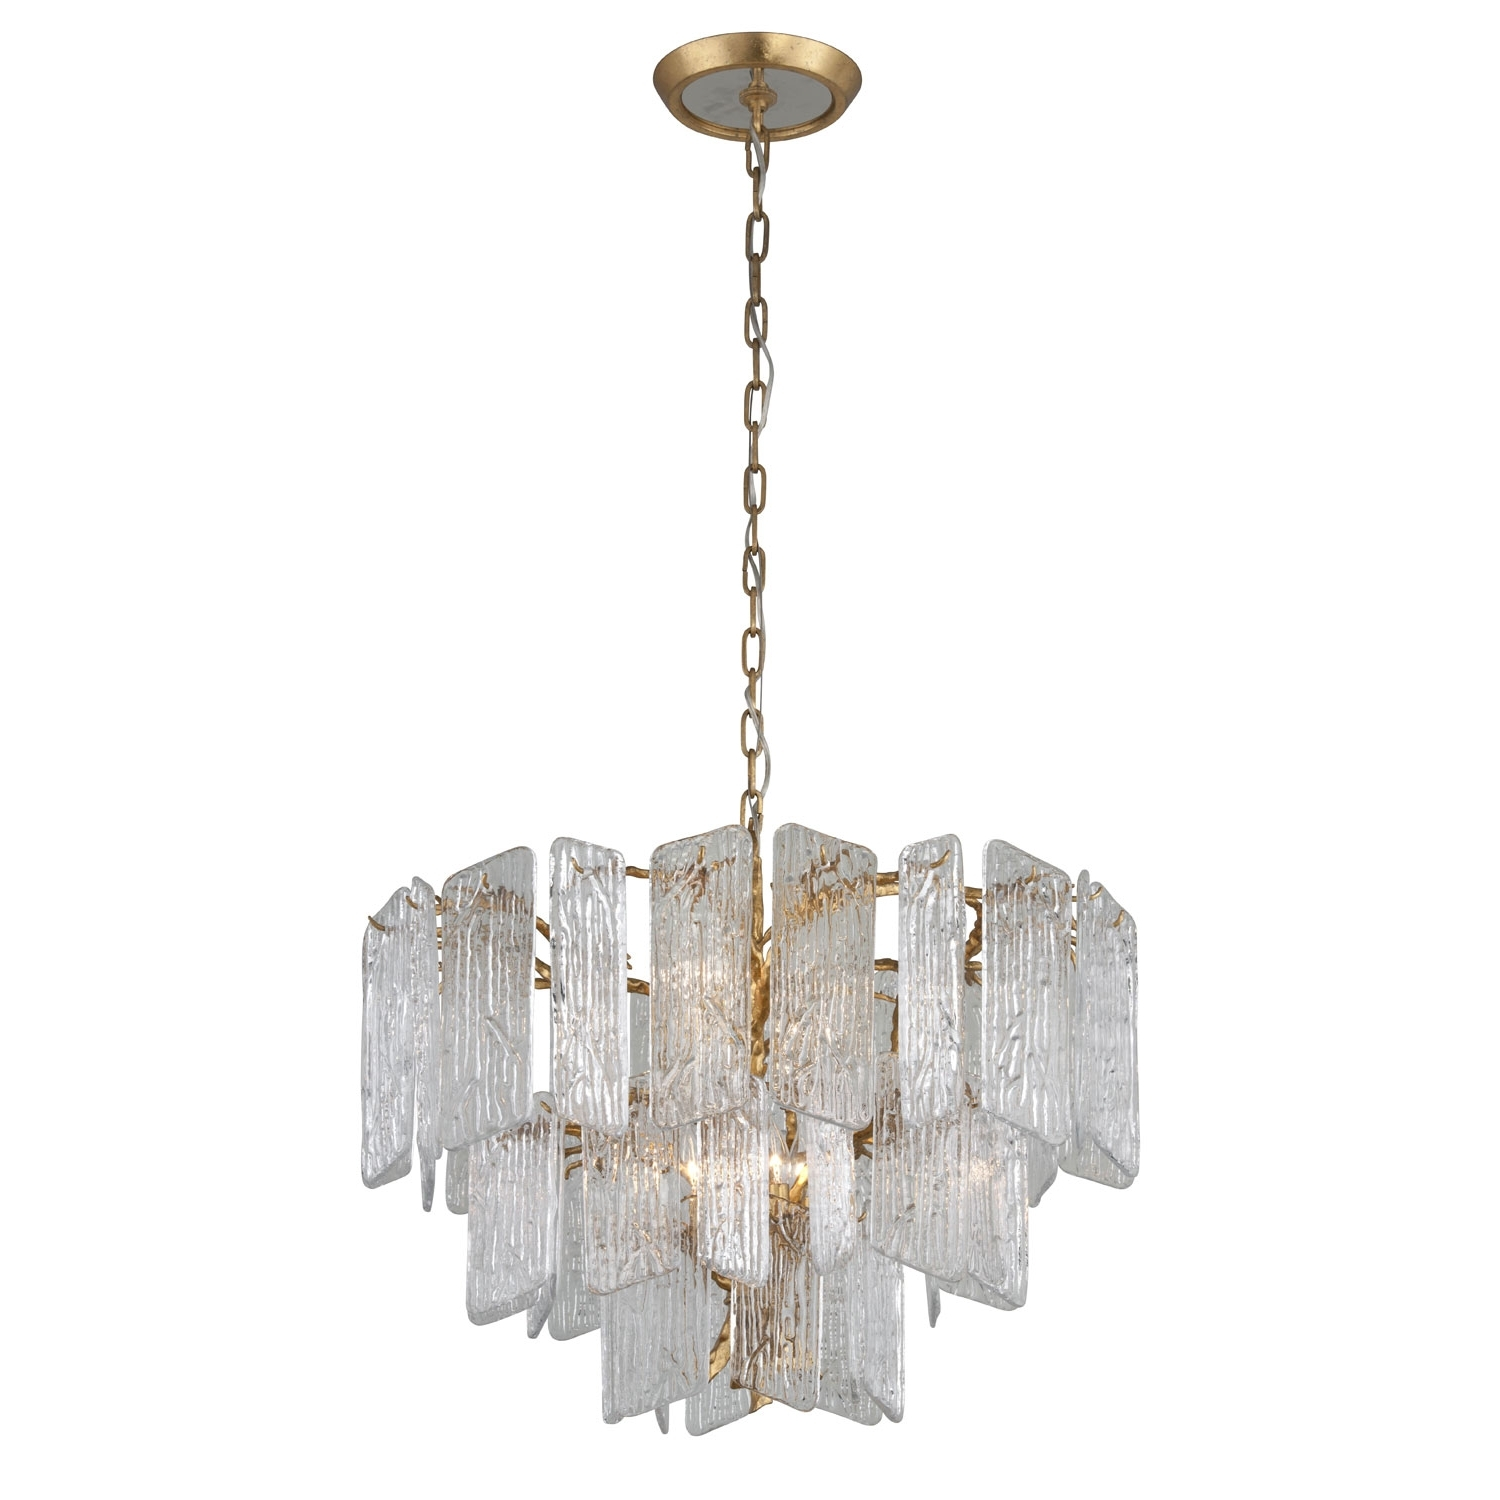 Over 300 Chandelier Styles To With Regard To 2018 Art Deco Chandeliers (View 10 of 20)